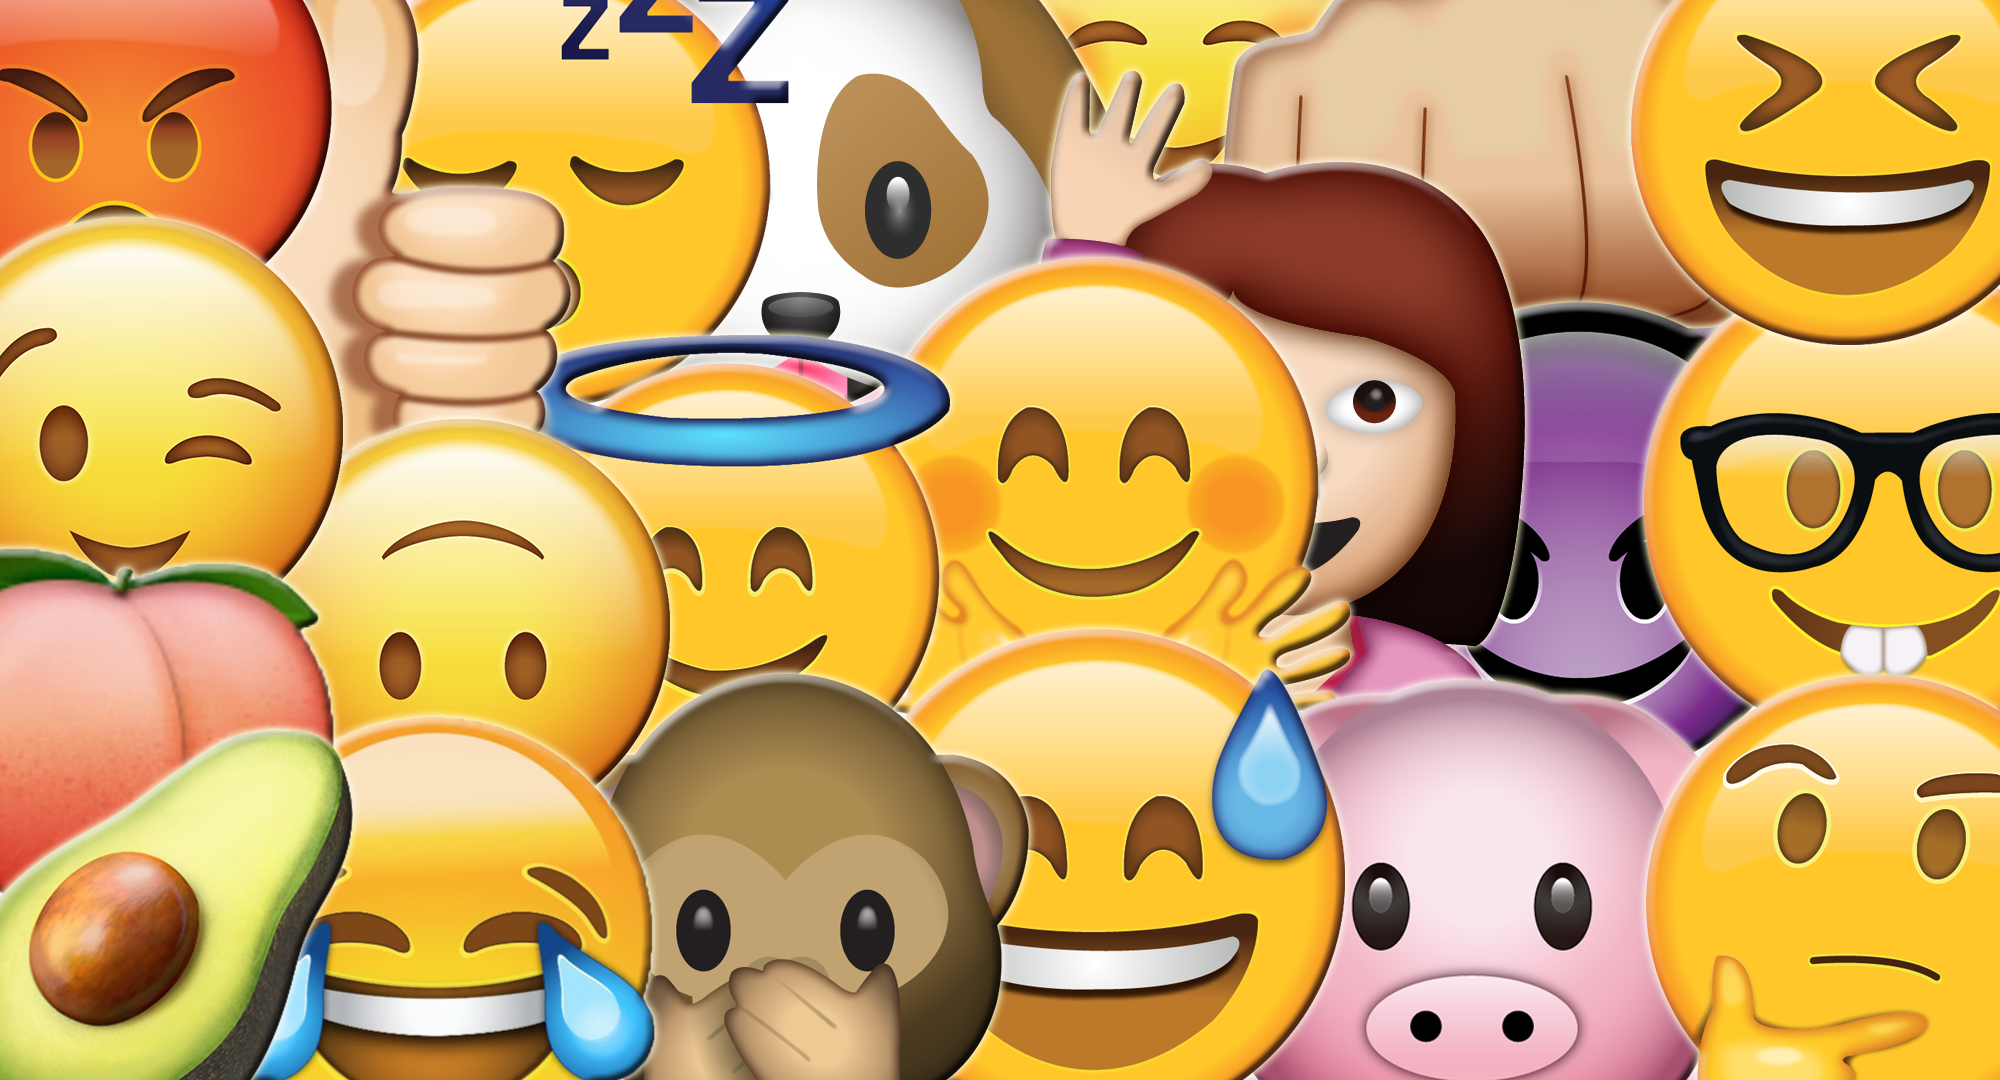 Love them or loathe them: are emojis here to stay?